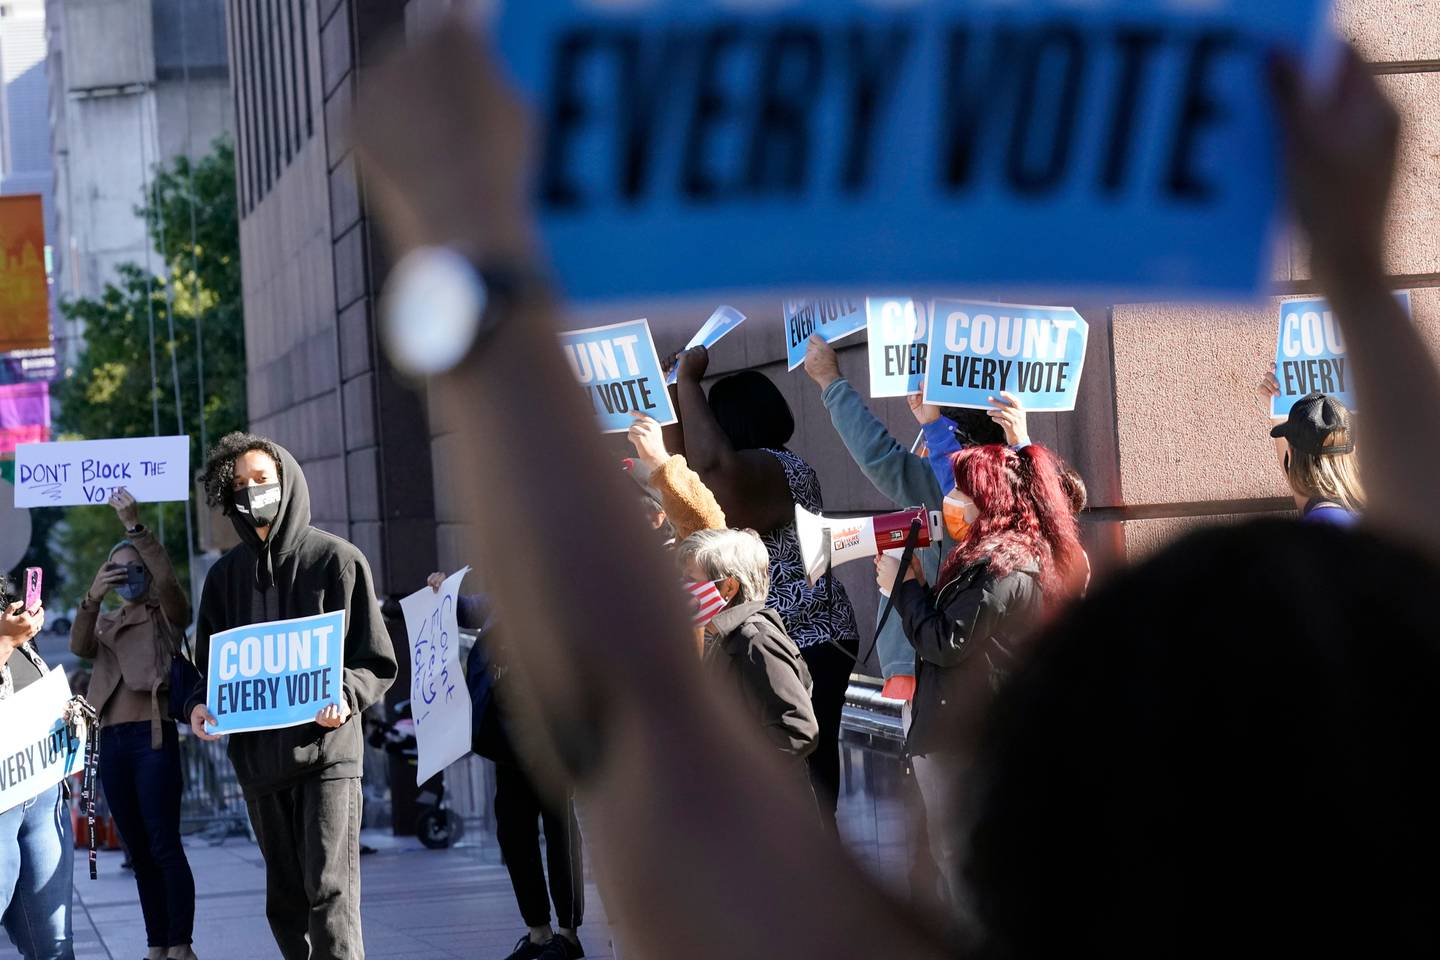 Demonstrators stand across the street from the federal courthouse in Houston, Texas, before a hearing involving drive-thru ballots on November 2. Photo / AP